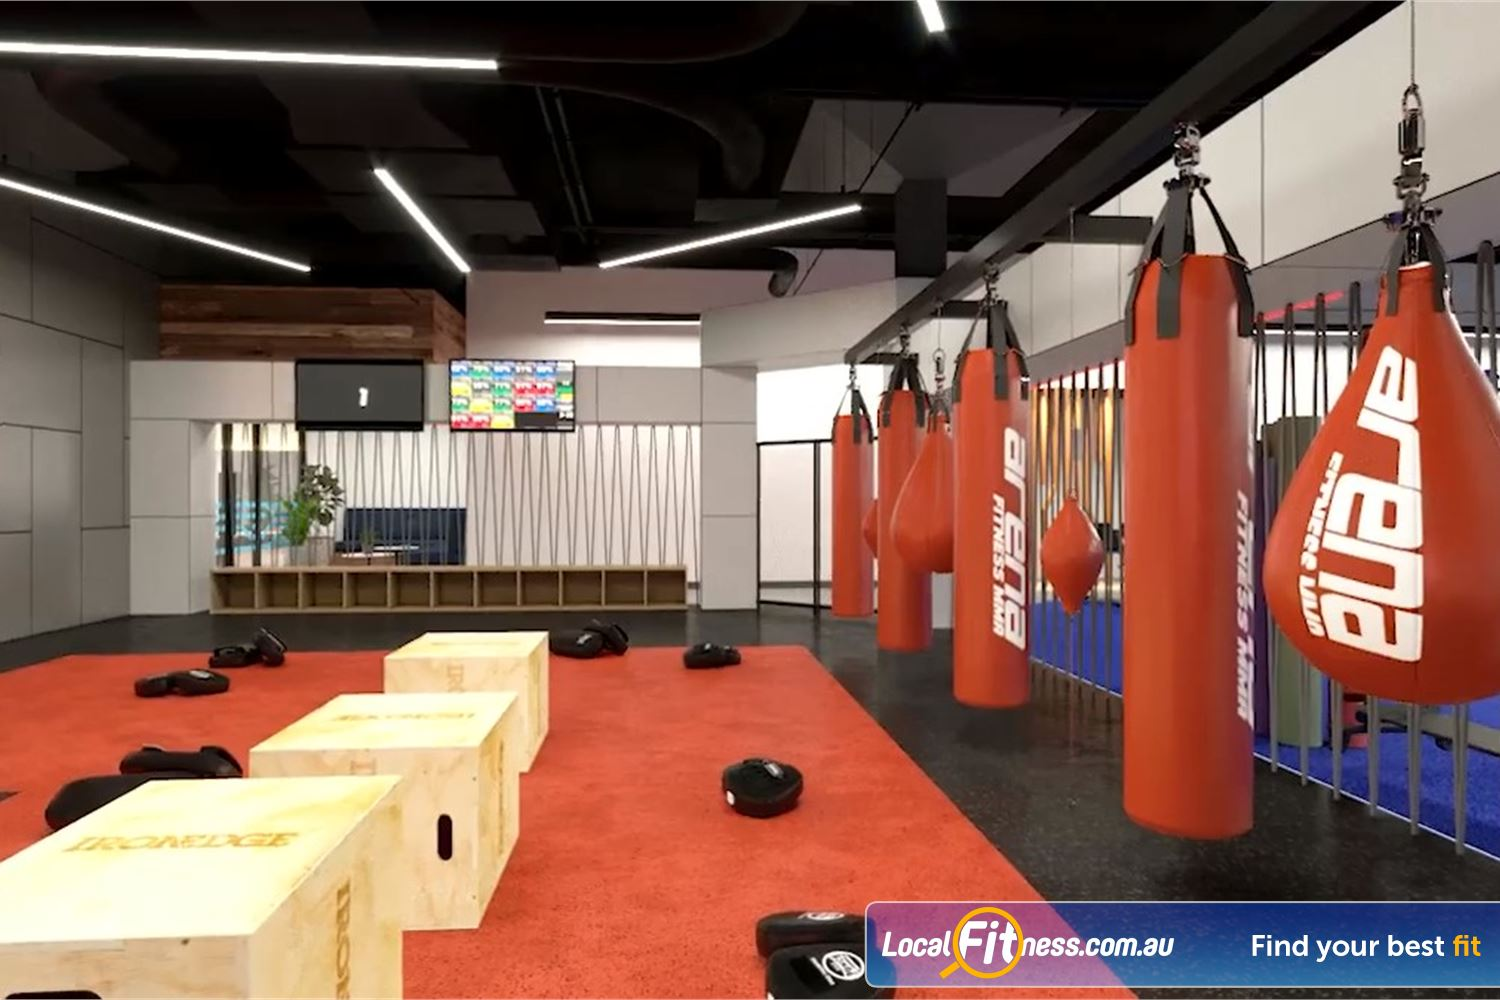 Goodlife Health Clubs Toowoomba The Arena Fitness MMA studio at Goodlife Toowoomba.